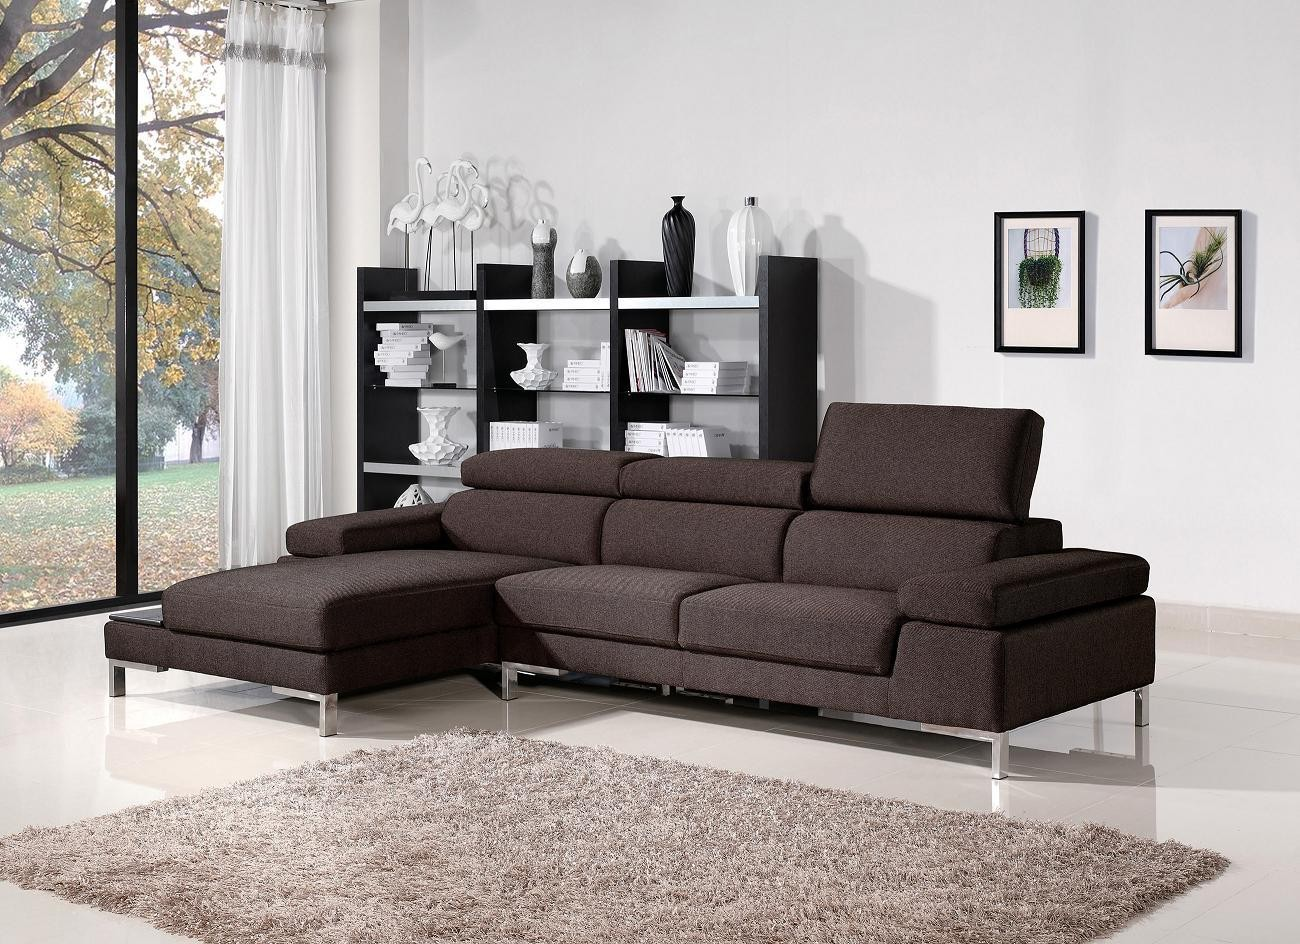 1103 Fabric Brown Sectional Sofa Buy From Nova Interiors